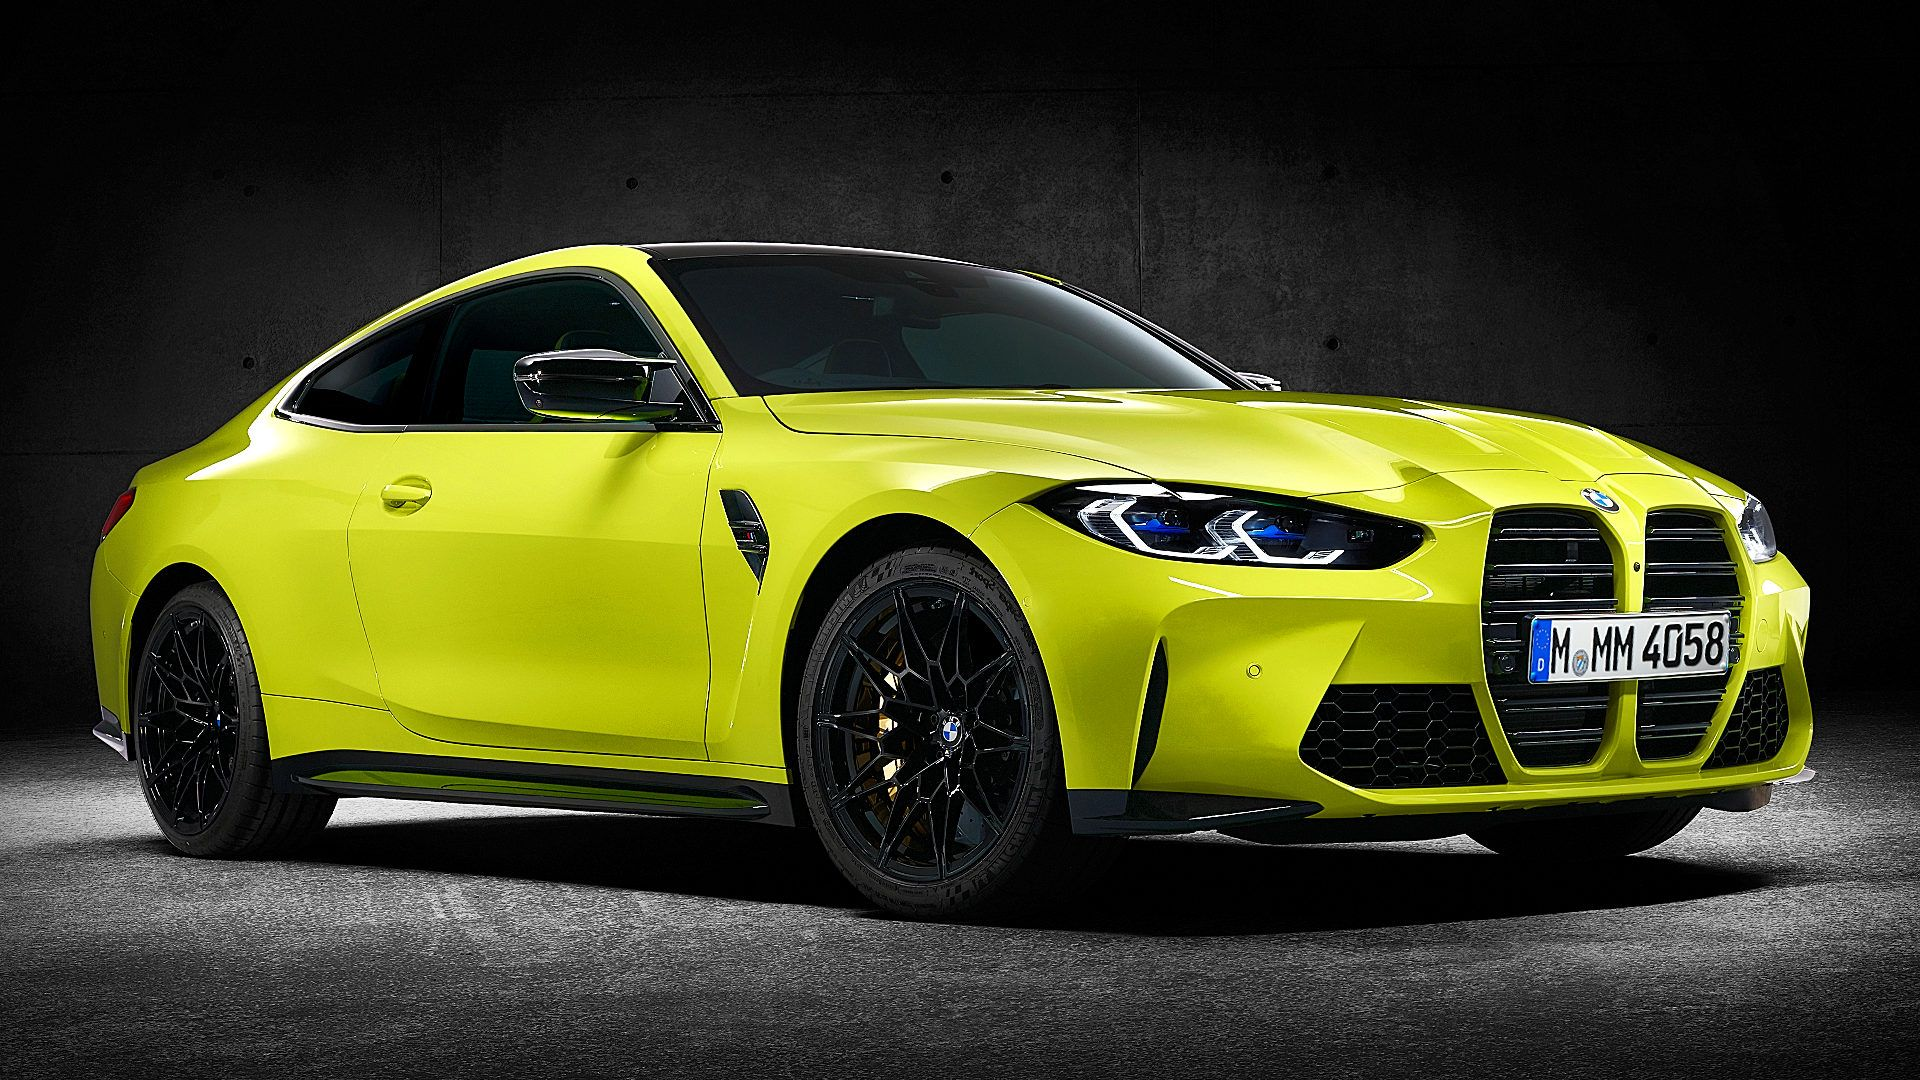 2021 BMW M4 Wallpapers - Wallpaper Cave